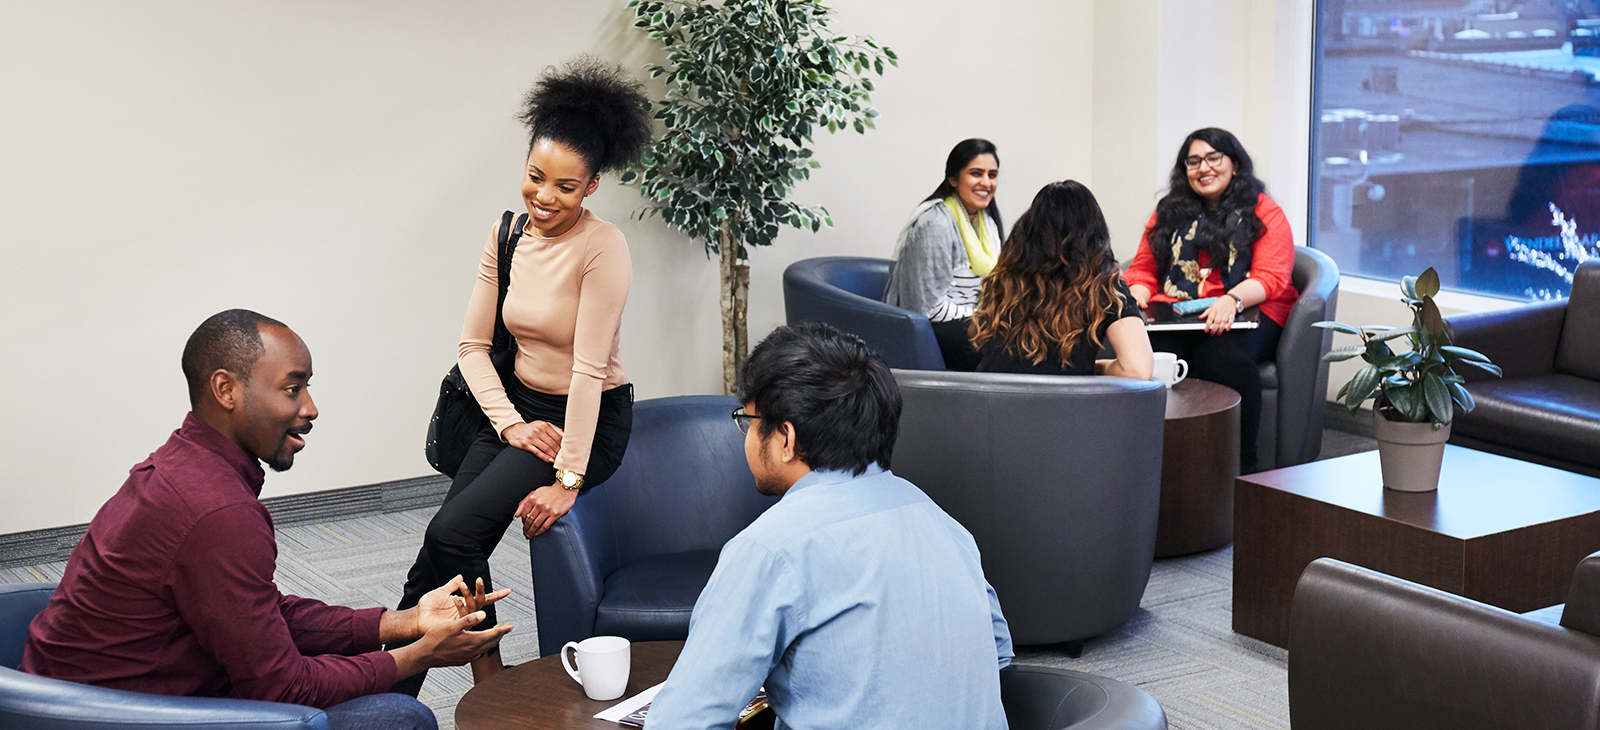 students conversing at brampton campus